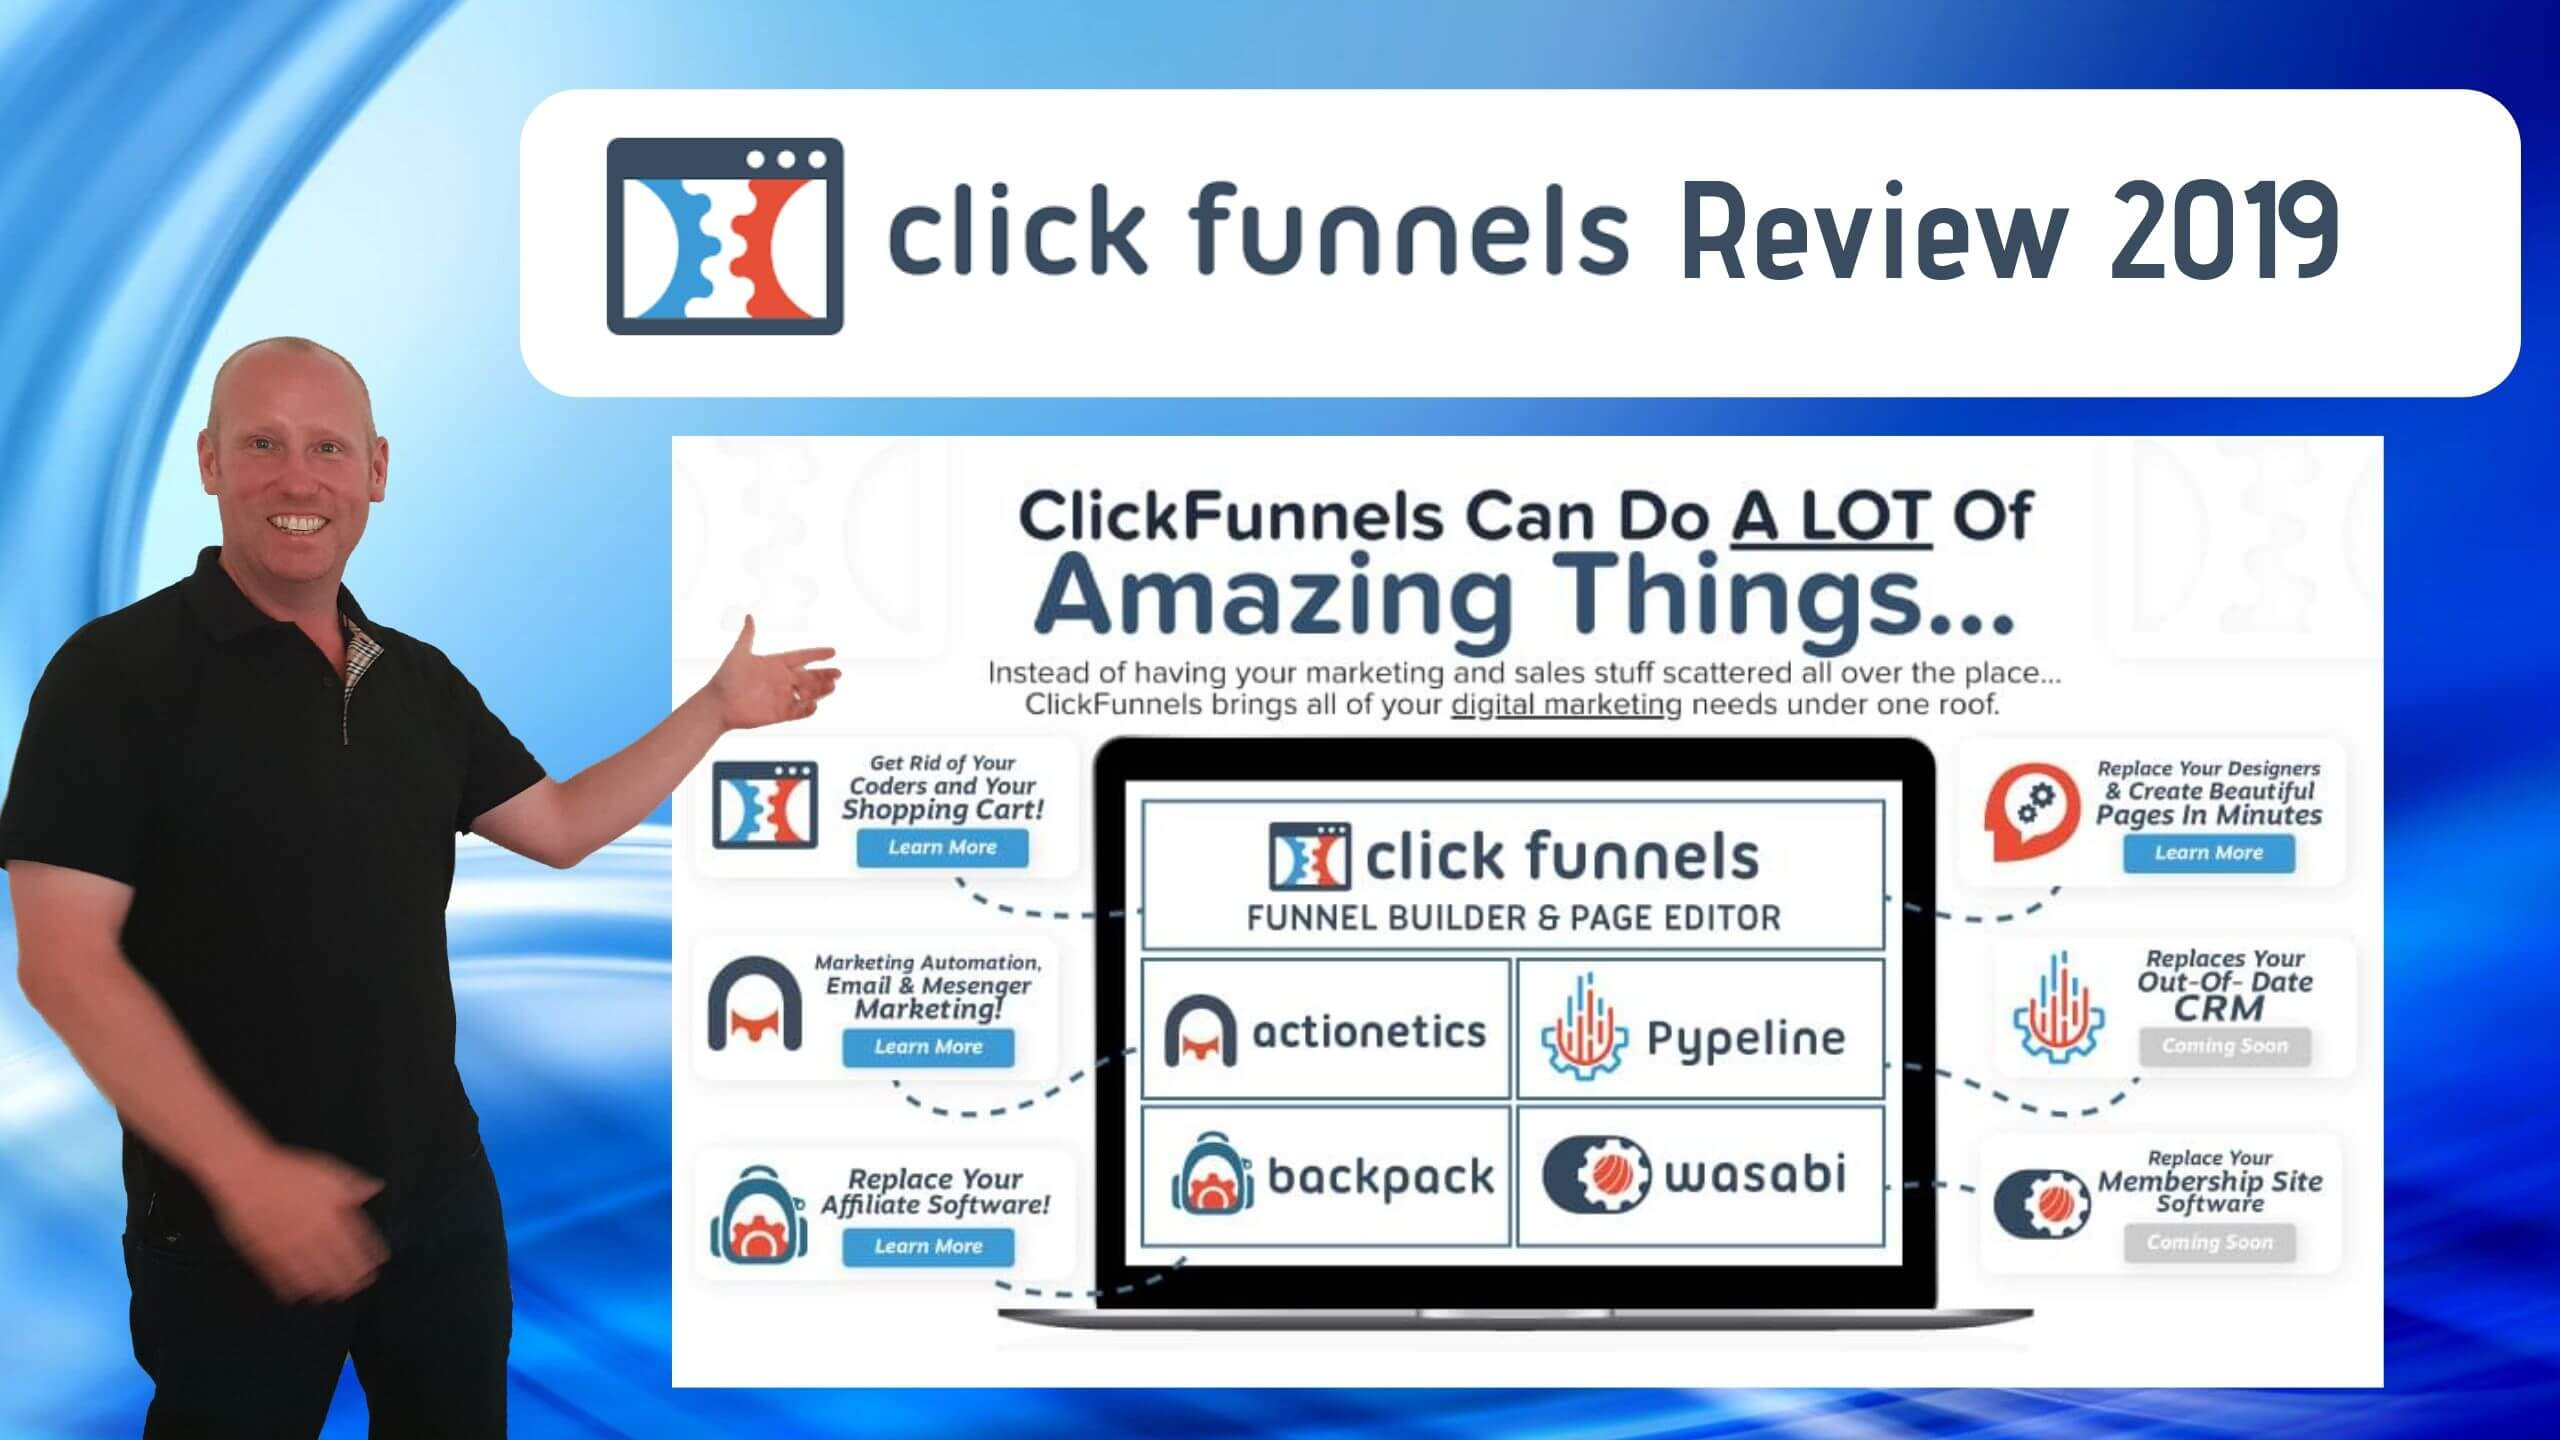 ClickFunnels Review 2019